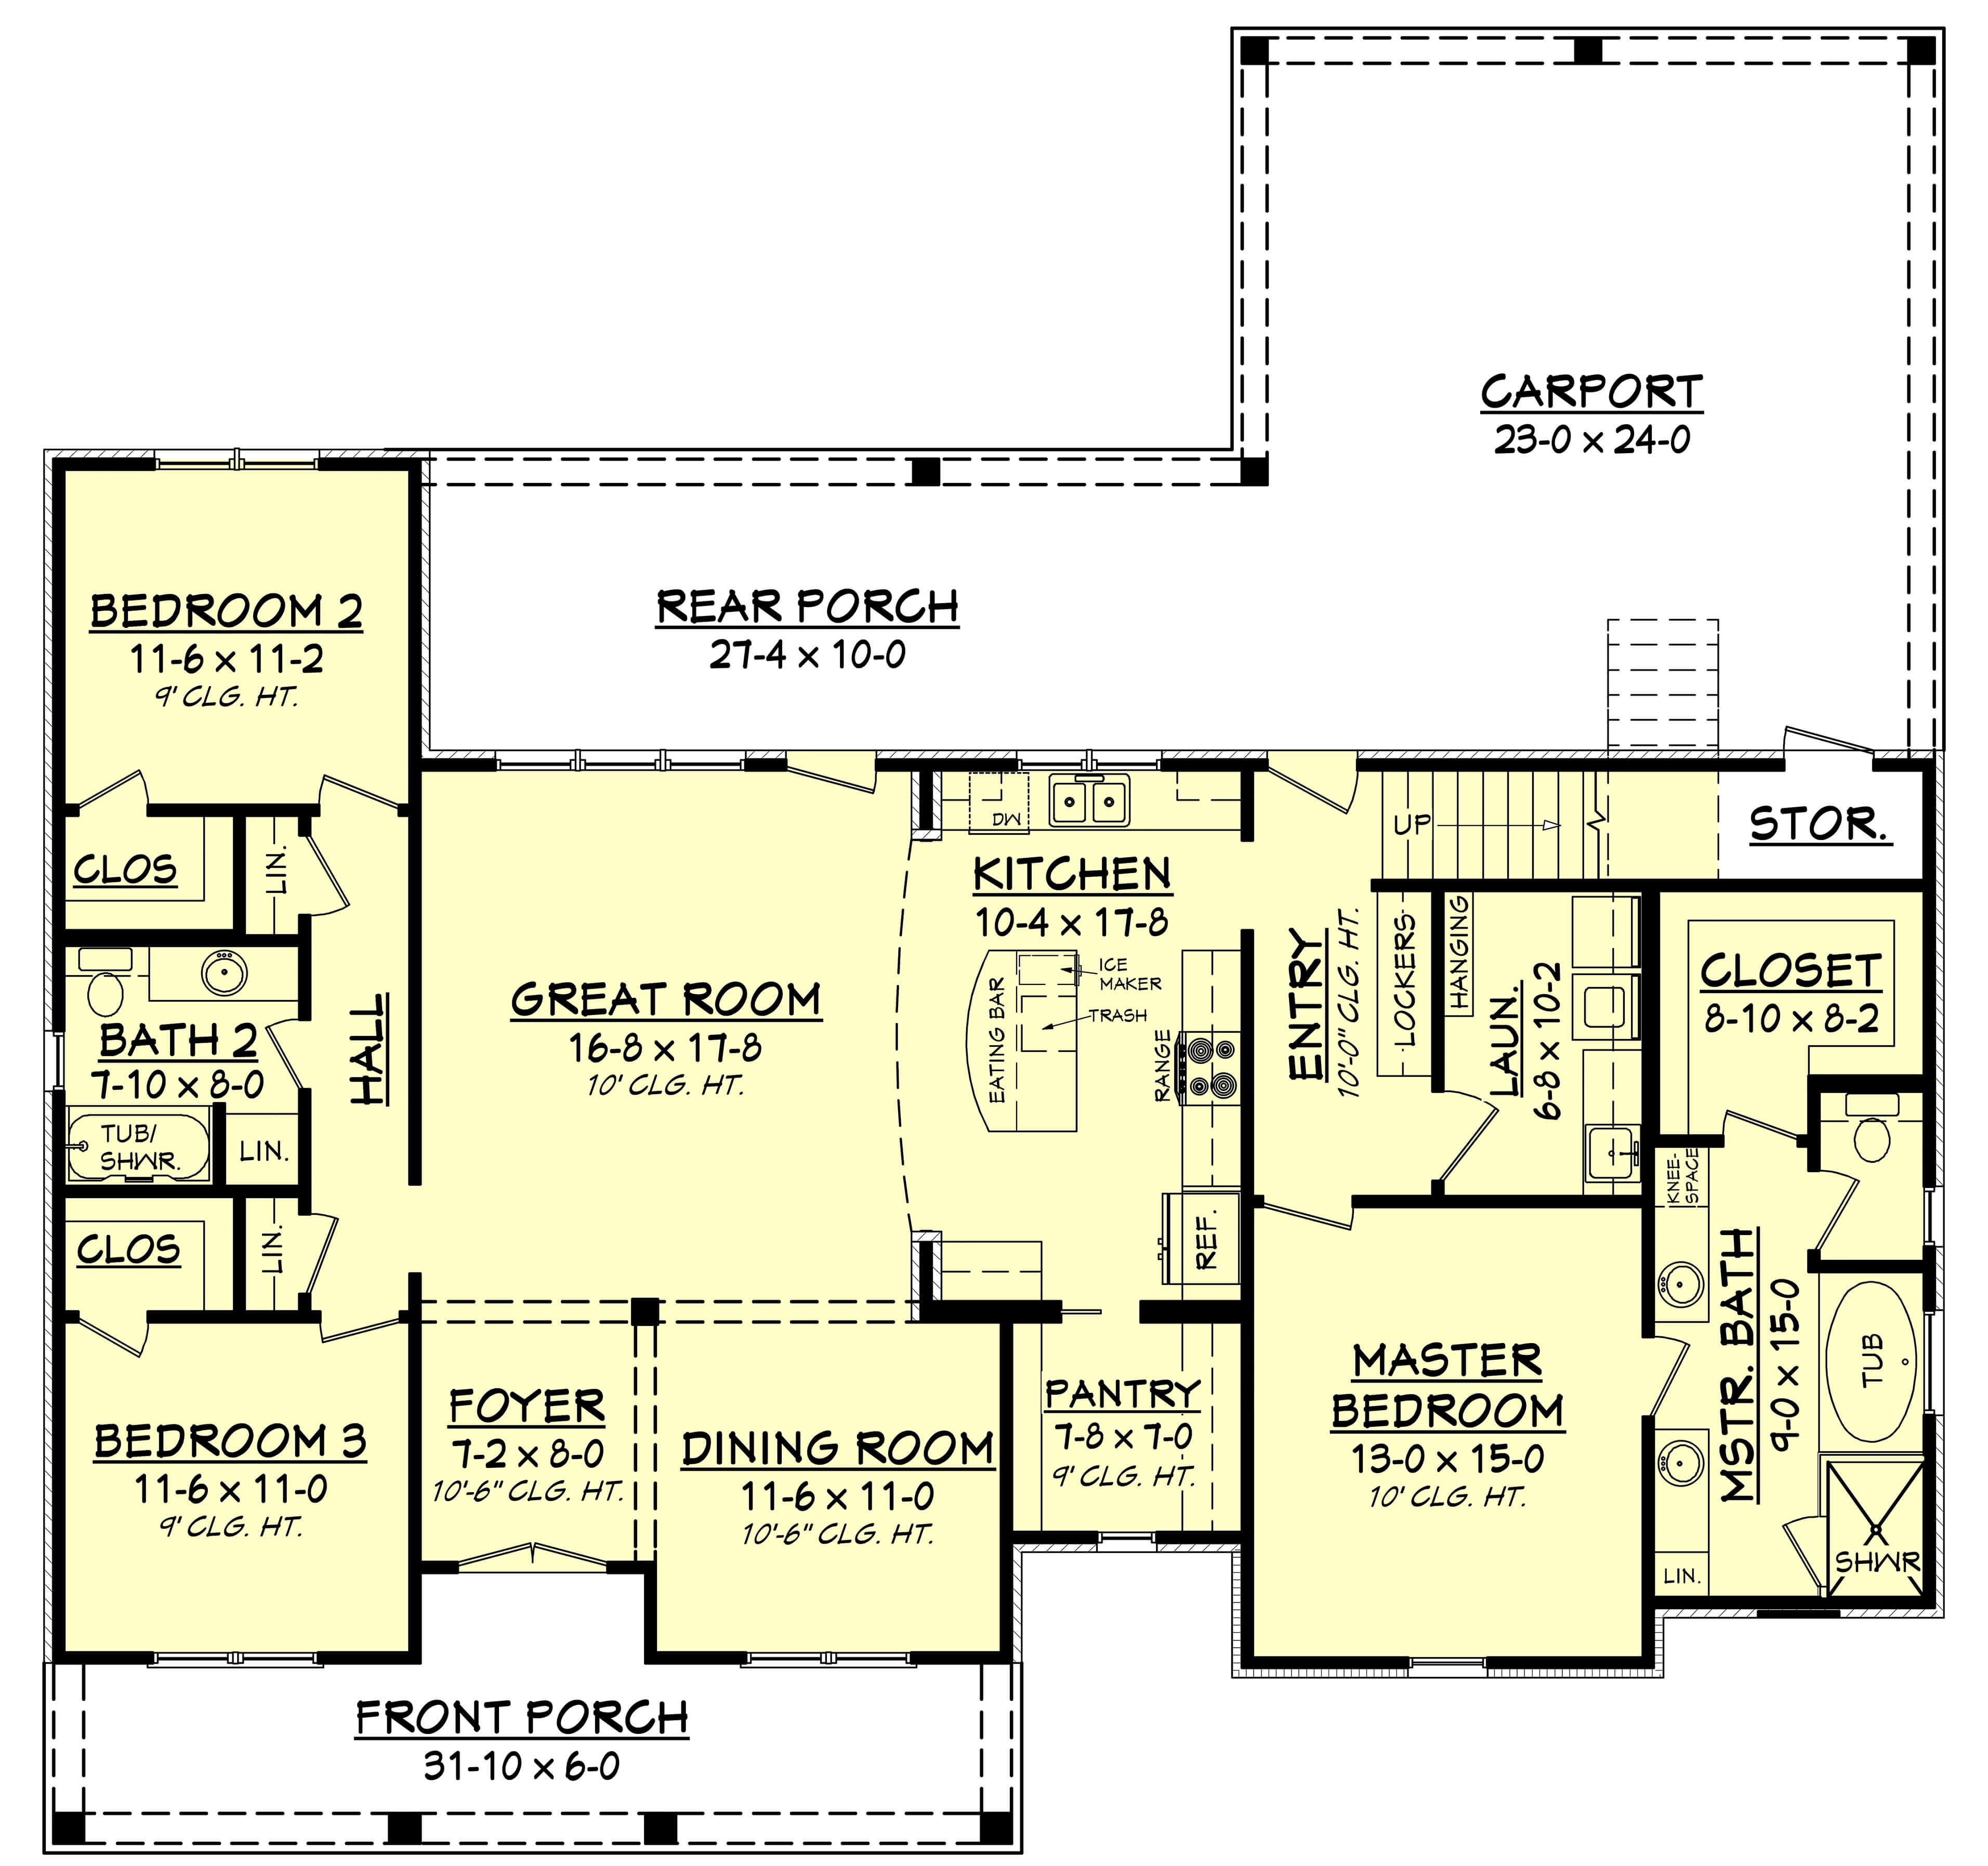 3 Bedrm, 1900 Sq Ft Acadian House Plan #142